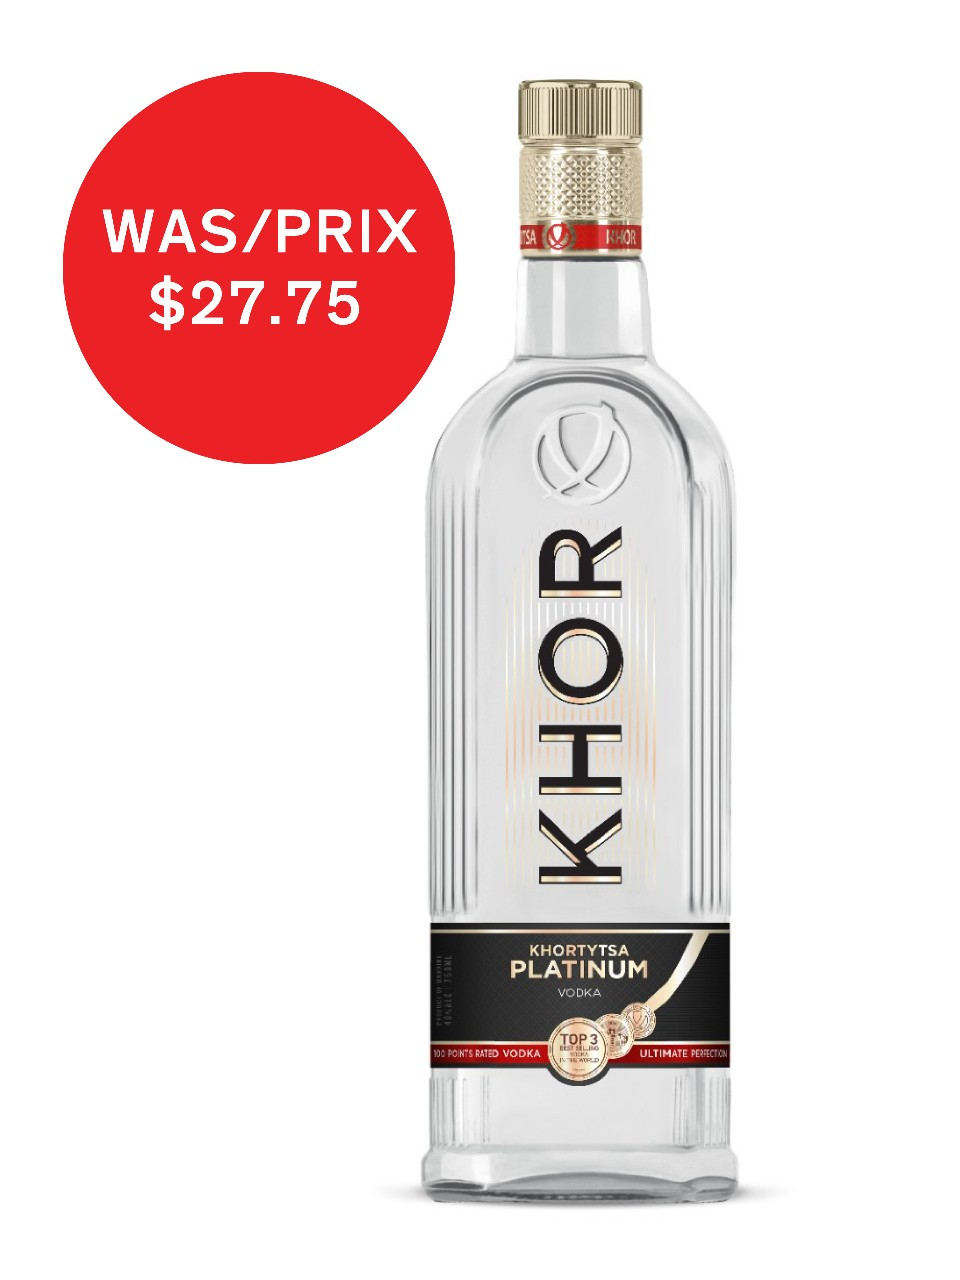 Khor - Platinum Vodka from LCBO